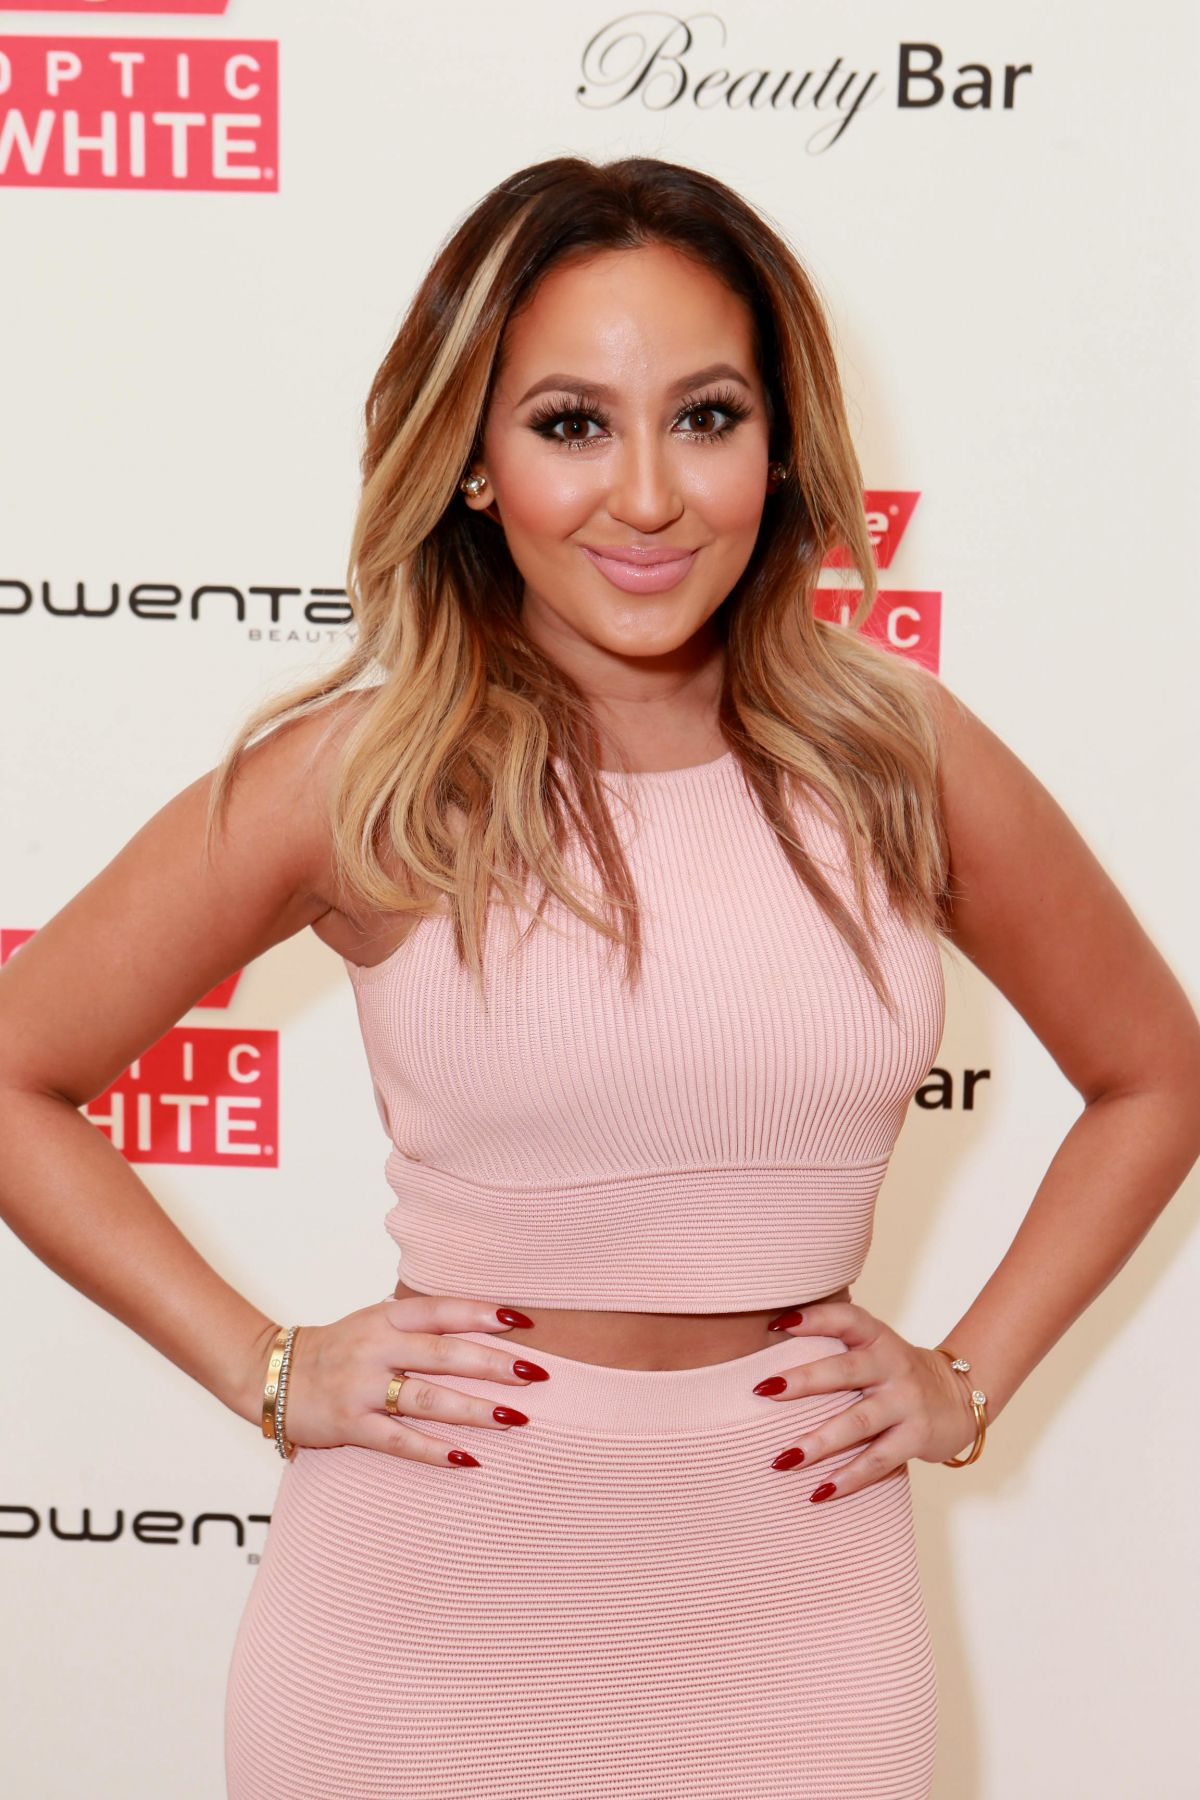 ADRIENNE BAILON at Colgate Optic White Beauty Bar in Los Angeles